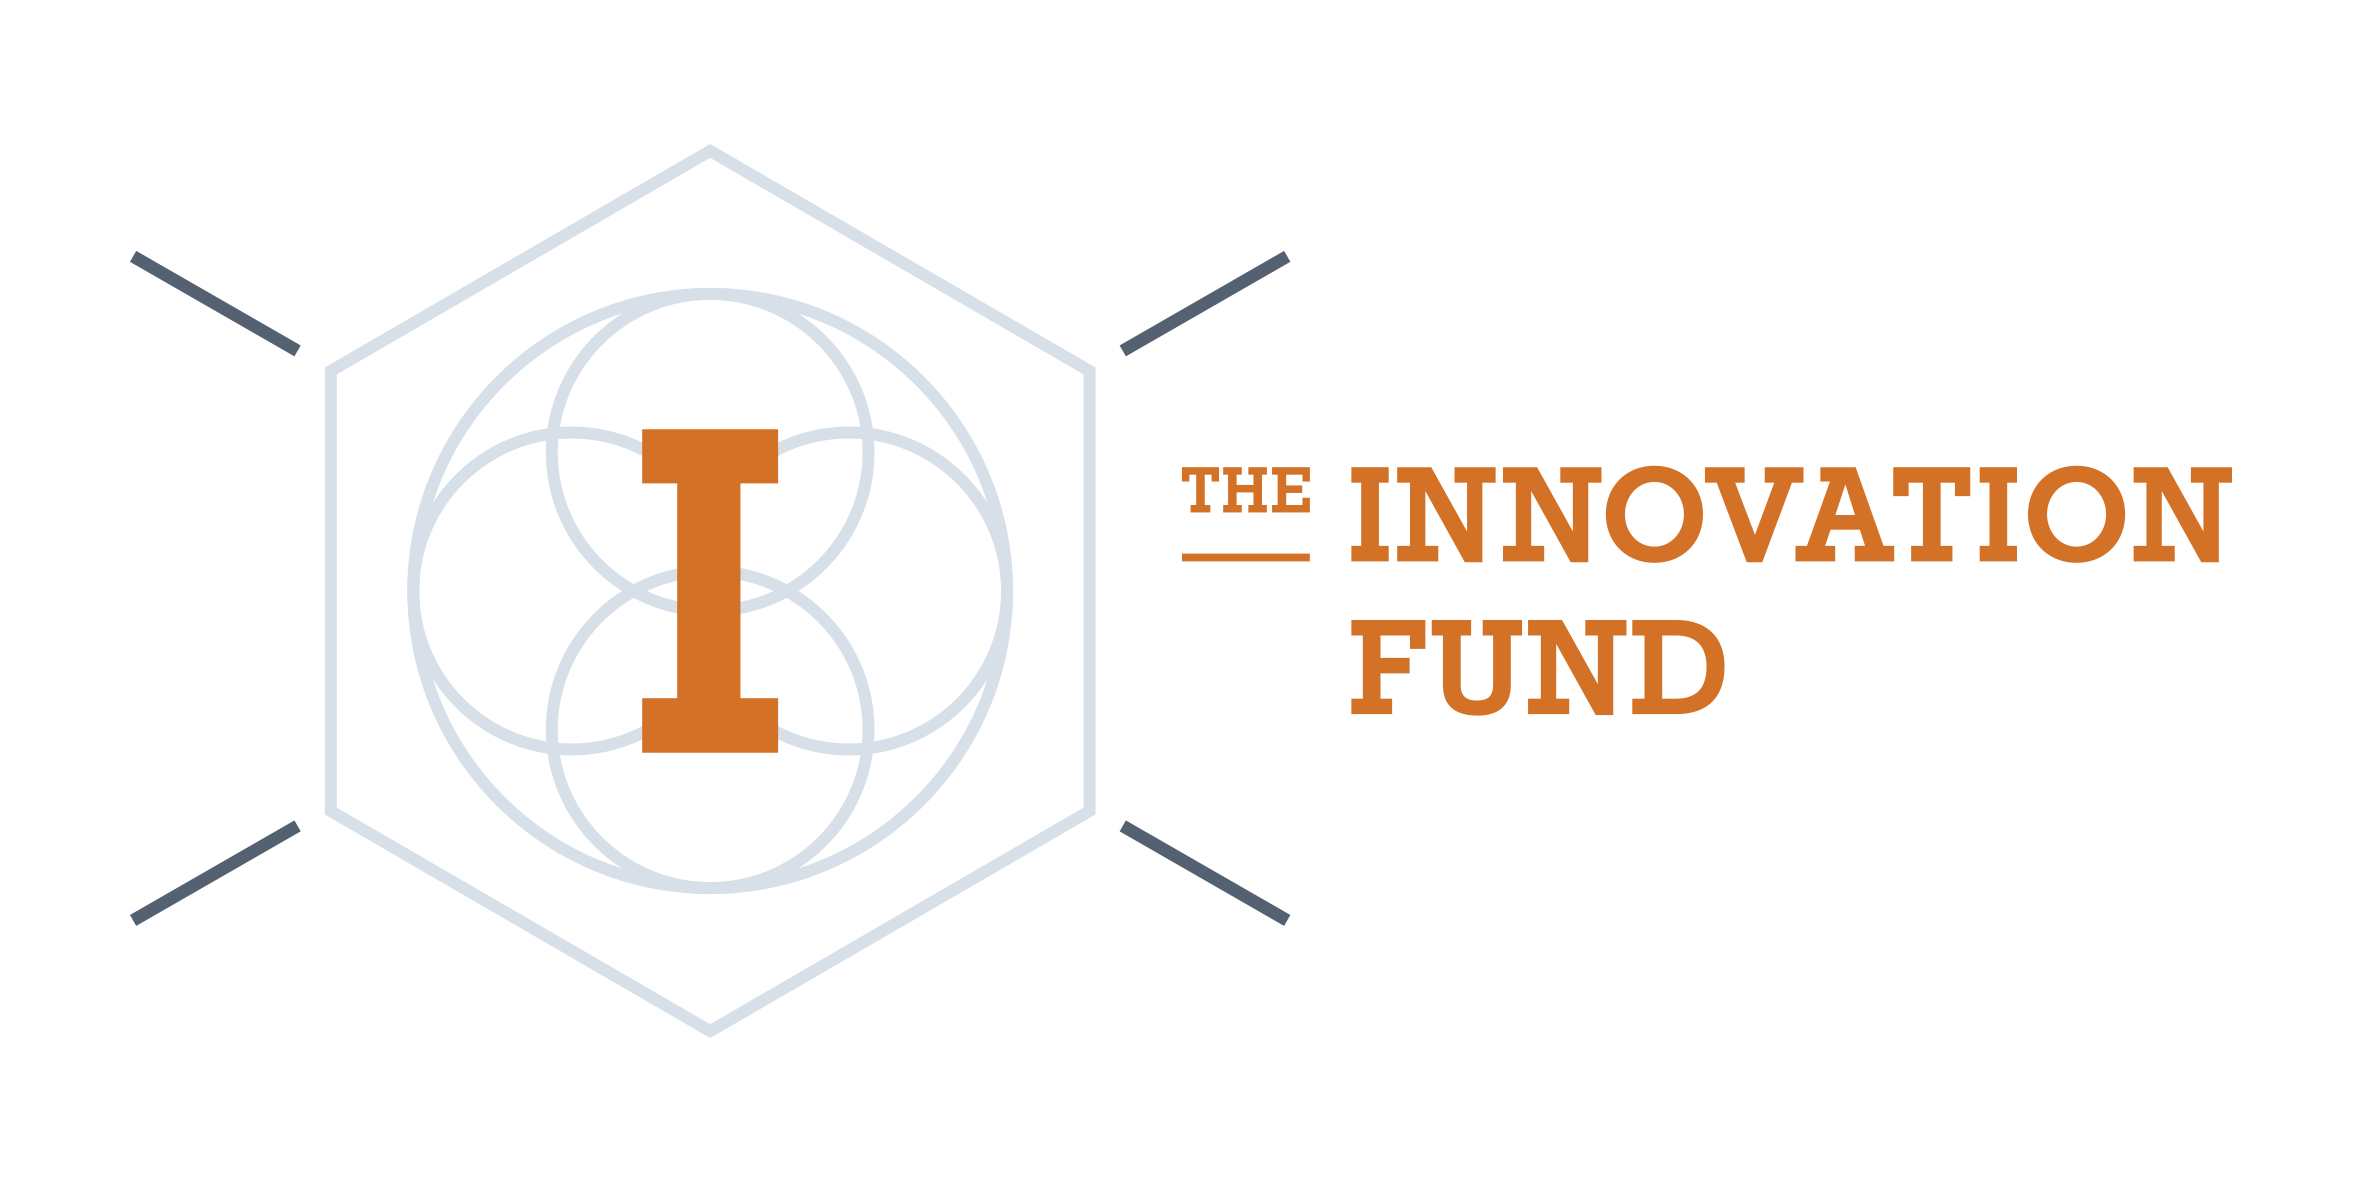 INNOVATION FUND - BE